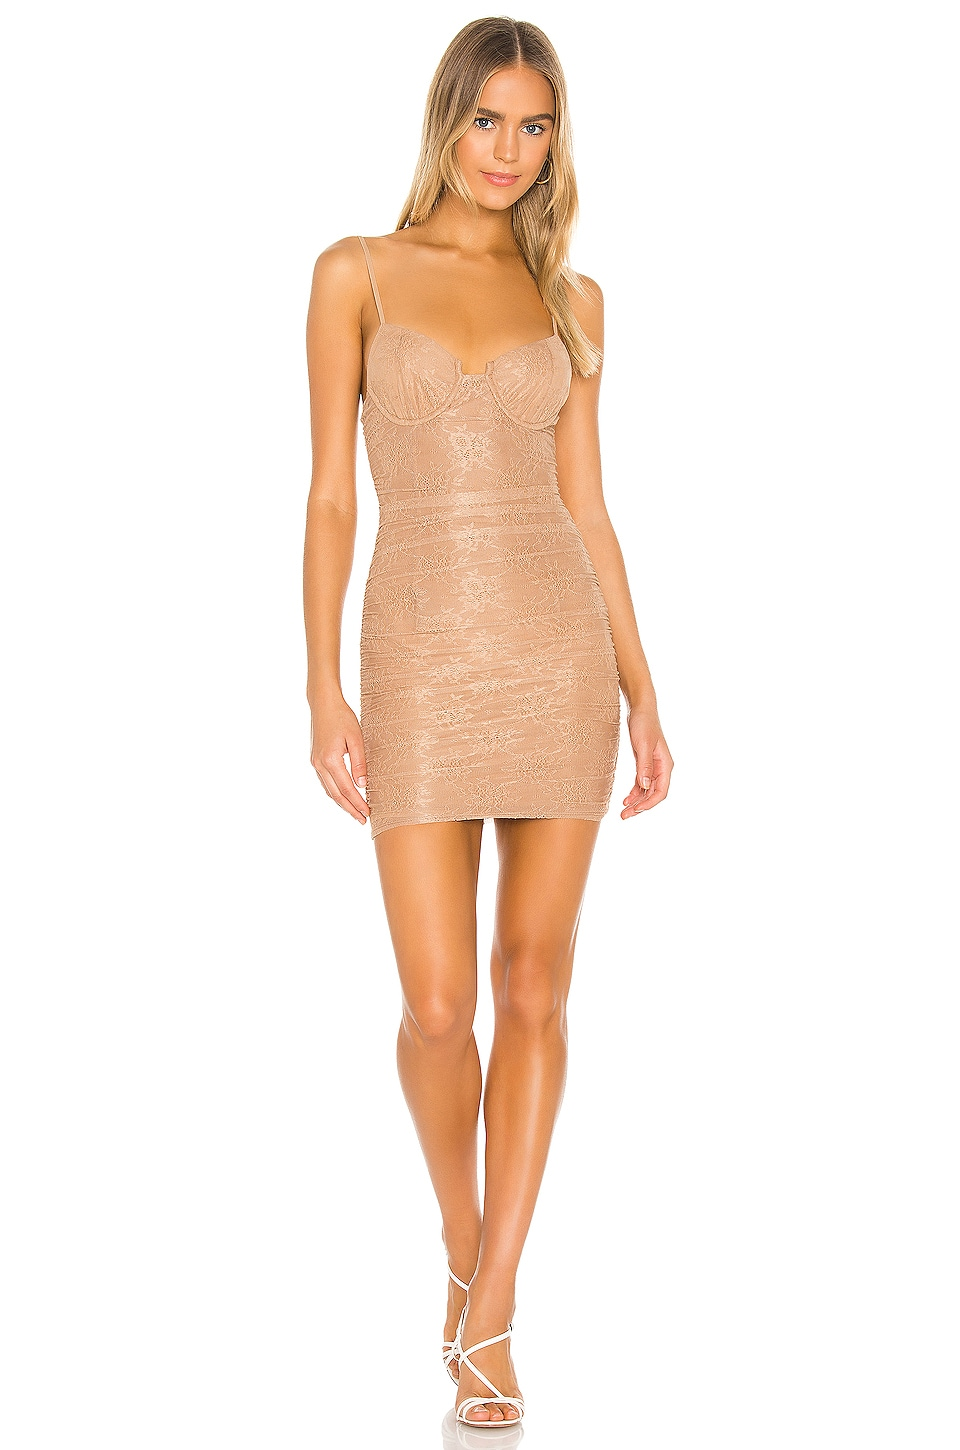 Sierra Mini Dress             Camila Coelho                                                                                                       CA$ 259.13 4